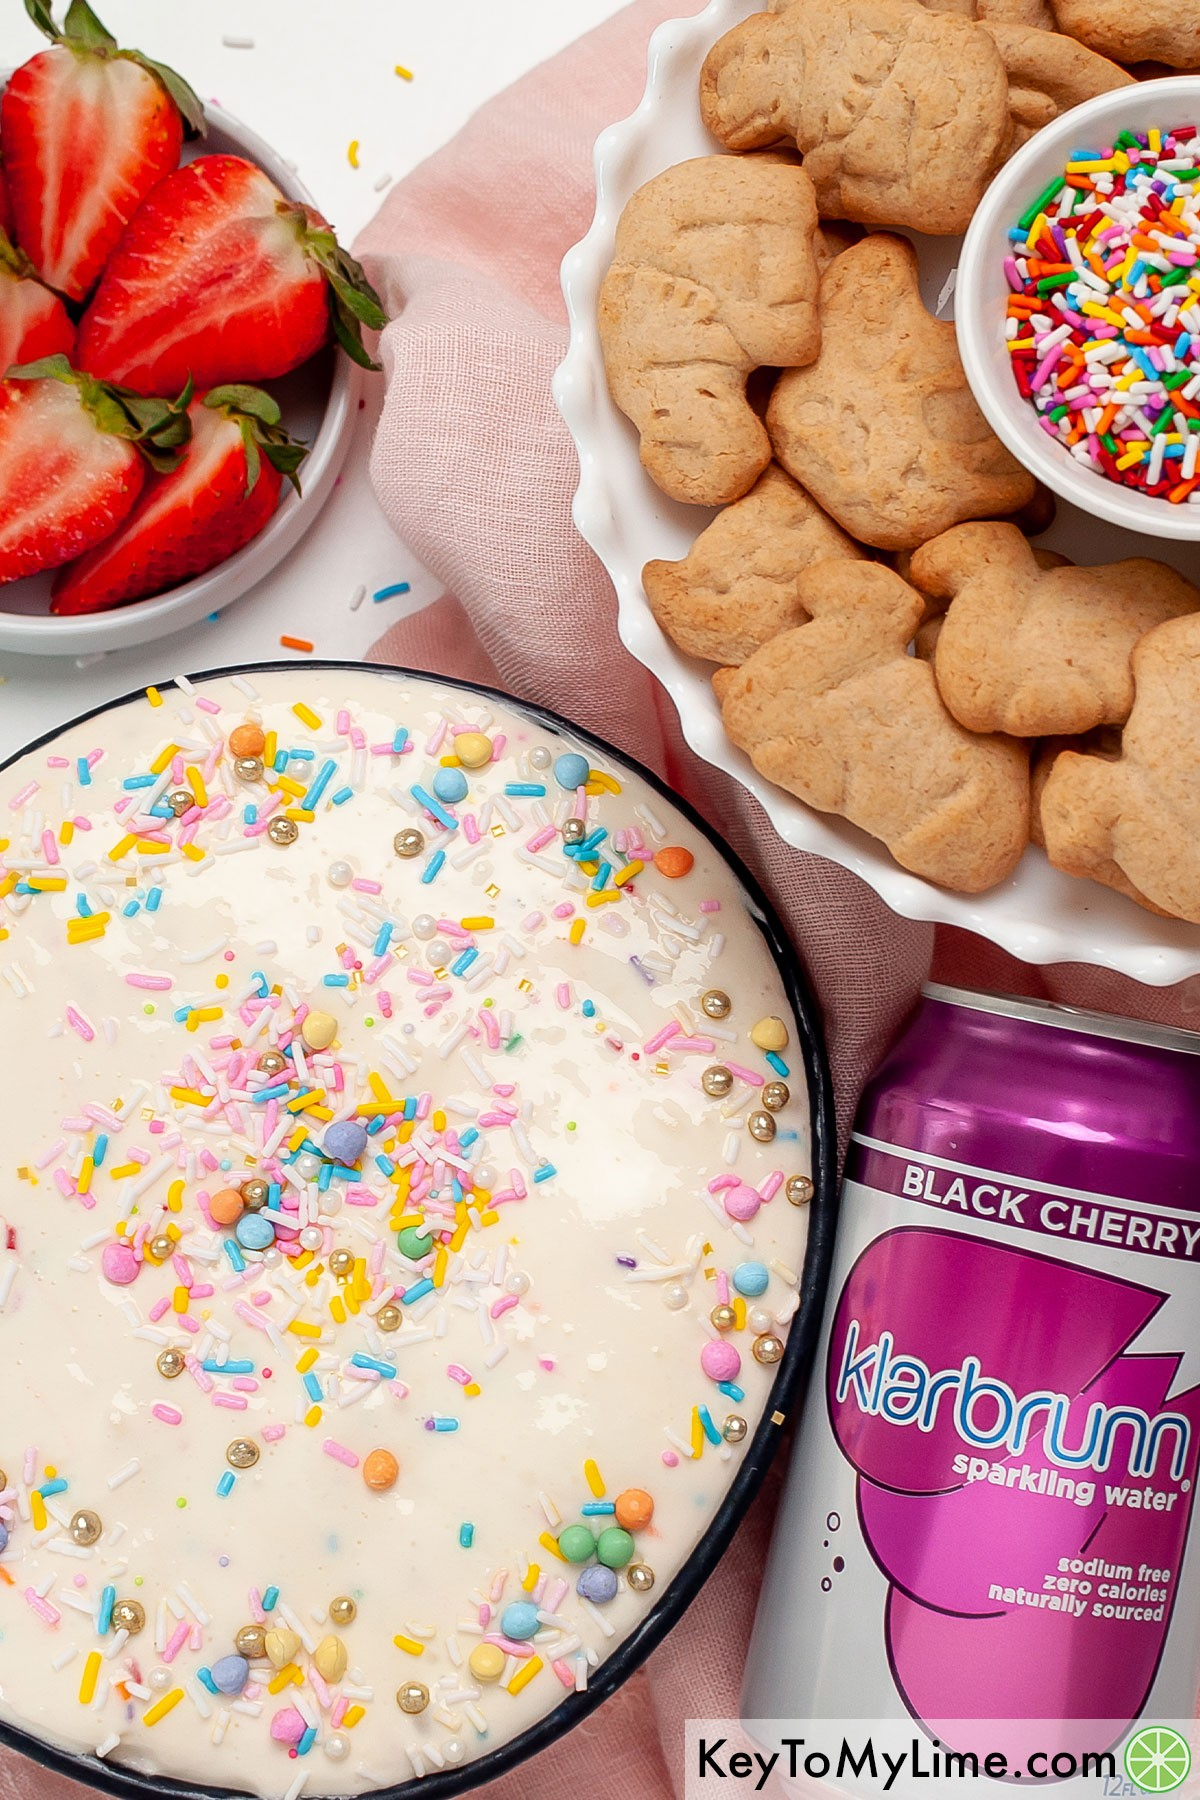 A bowl of funfetti dip next to a can of Klarbrunn sparkling water.